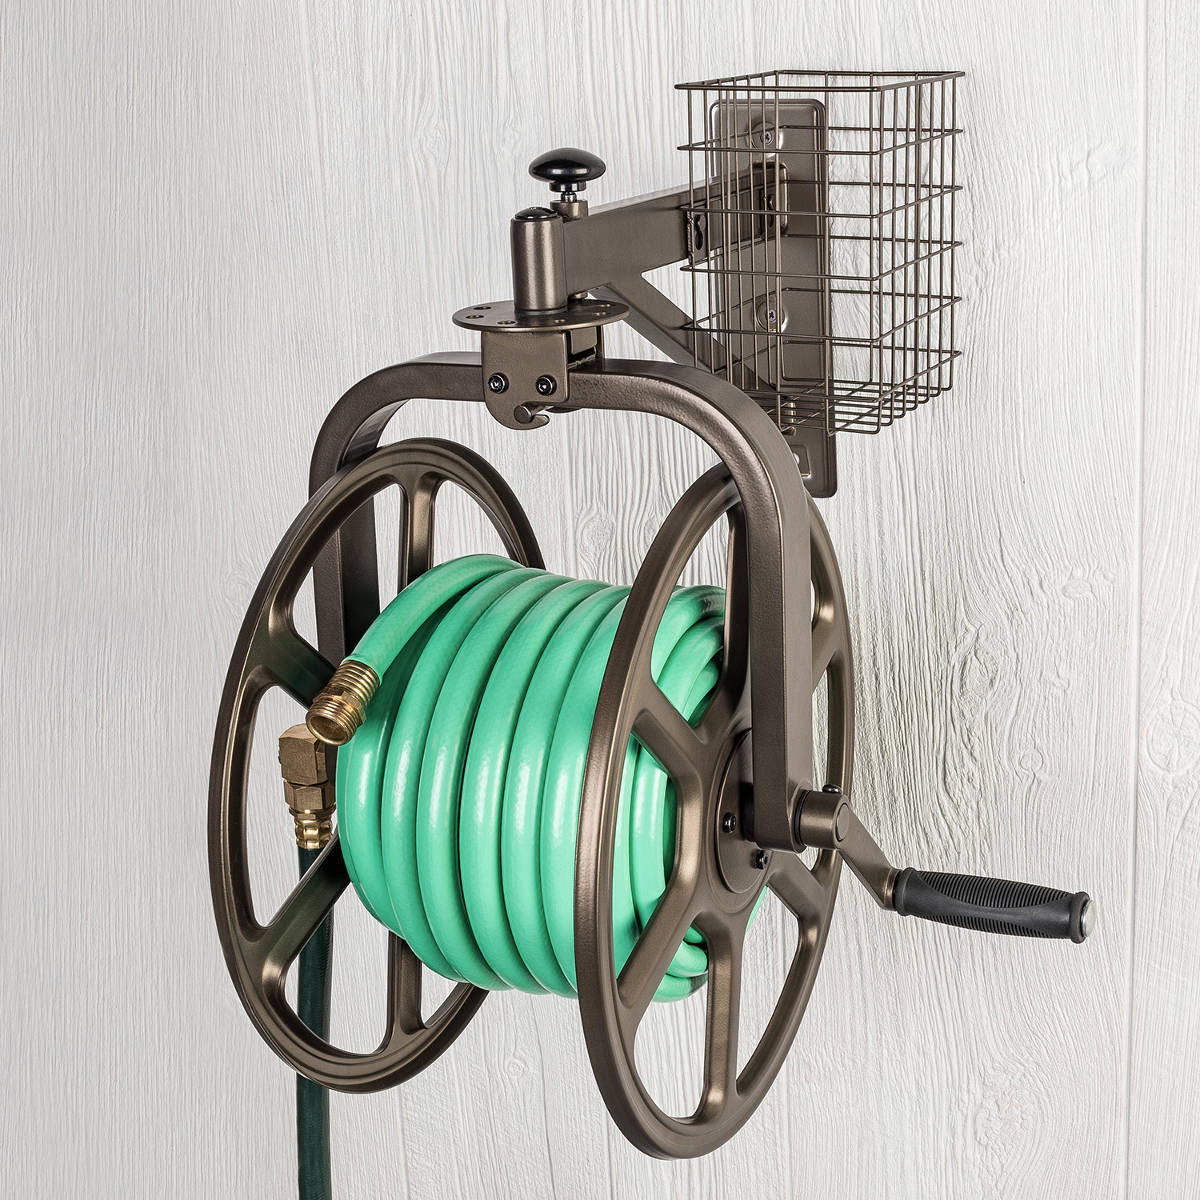 Liberty Garden 712 Single Arm Navigator Multi-Directional Garden Hose Reel